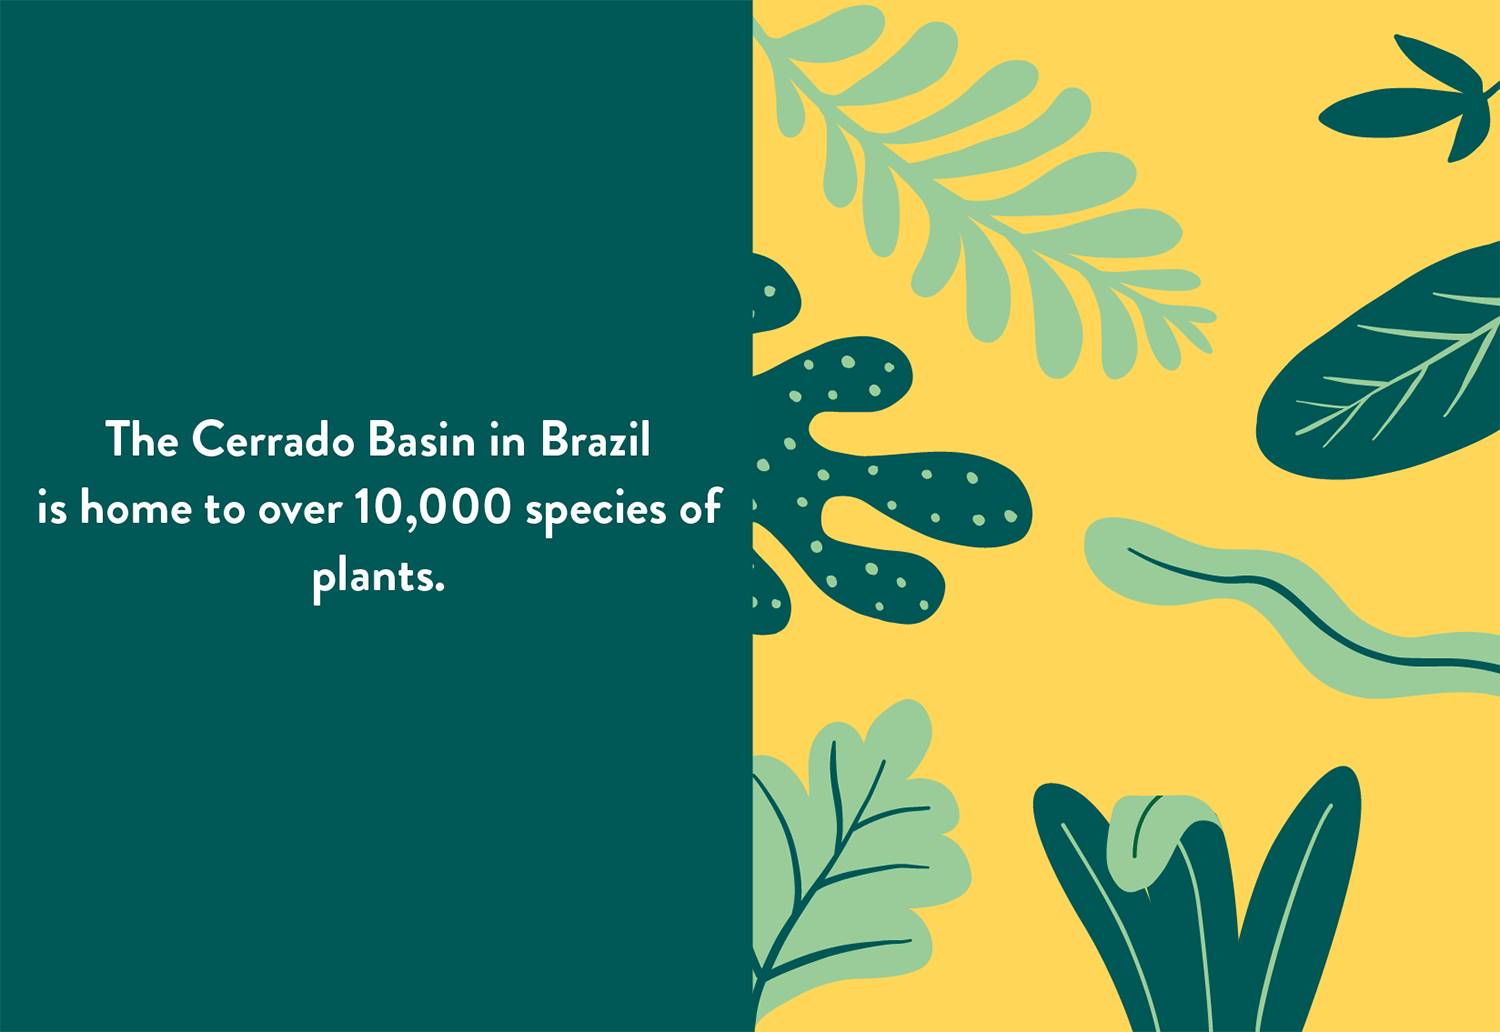 Infographic showing 10,000 species of plants in Cerrado Basin